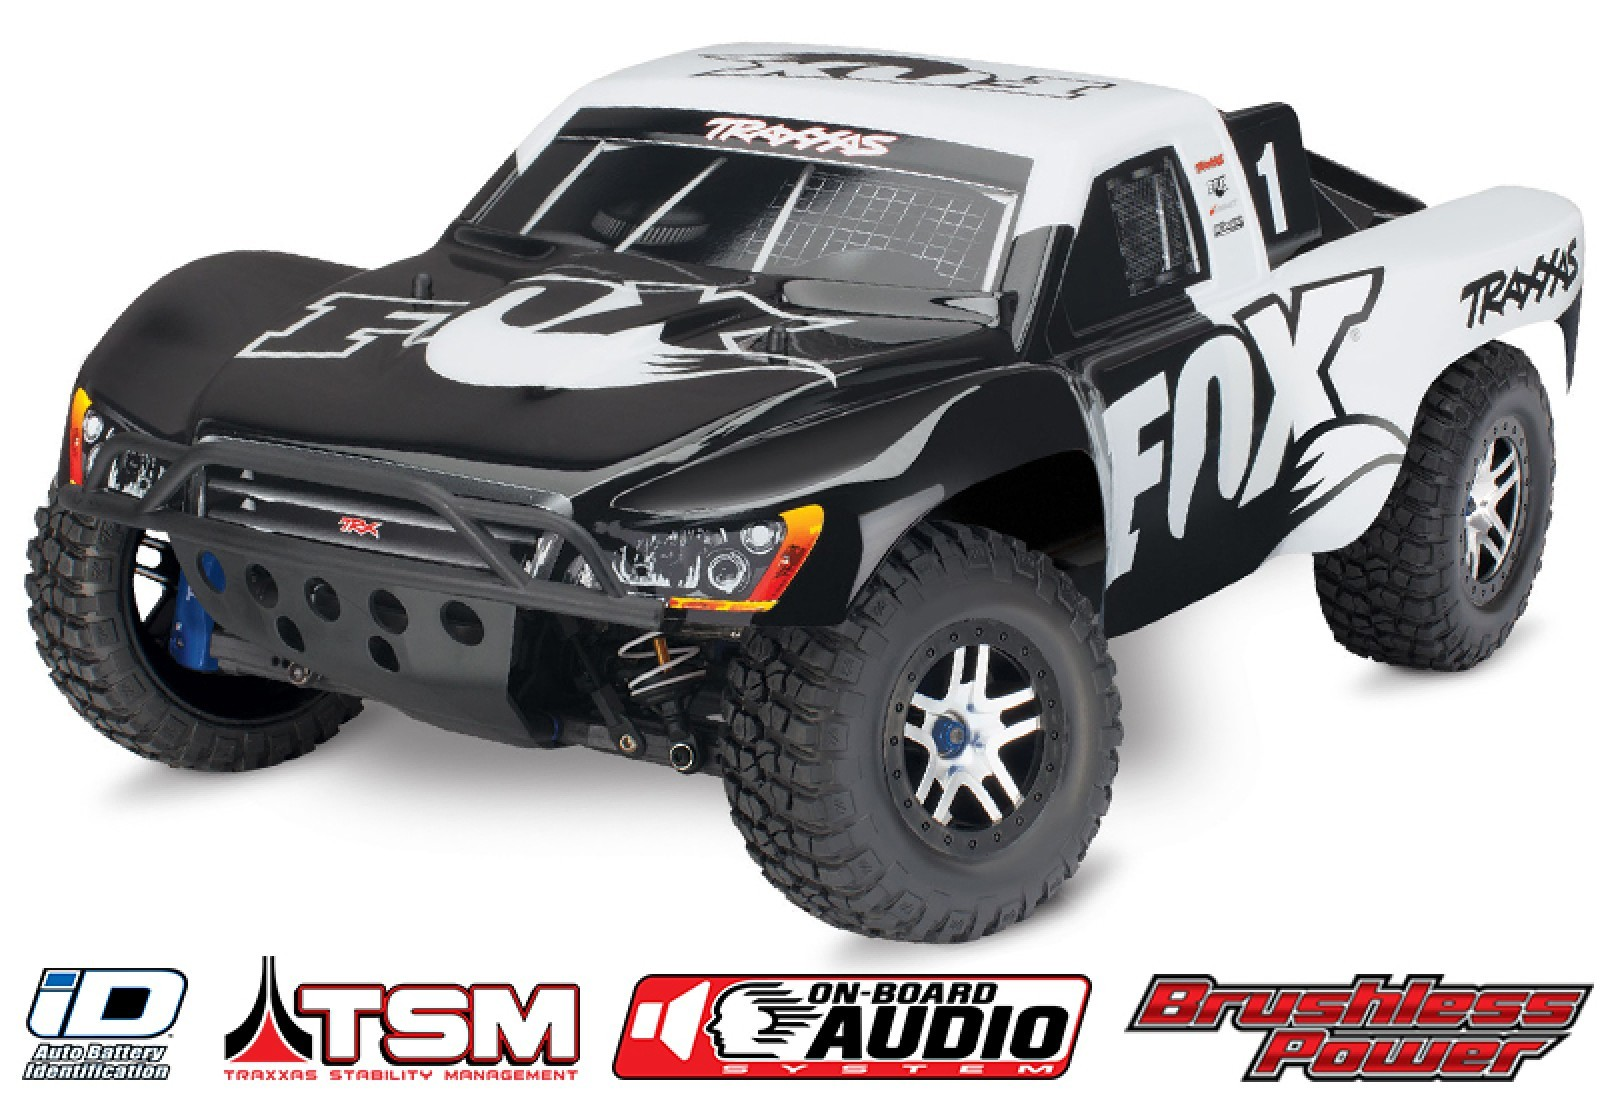 Slash 4x4 Ult Subaru Coffee Traxxas 1 10 Scale Brushless Short Course Truck 6808l Ultimate With Oba Tsm 68077 24 4wd